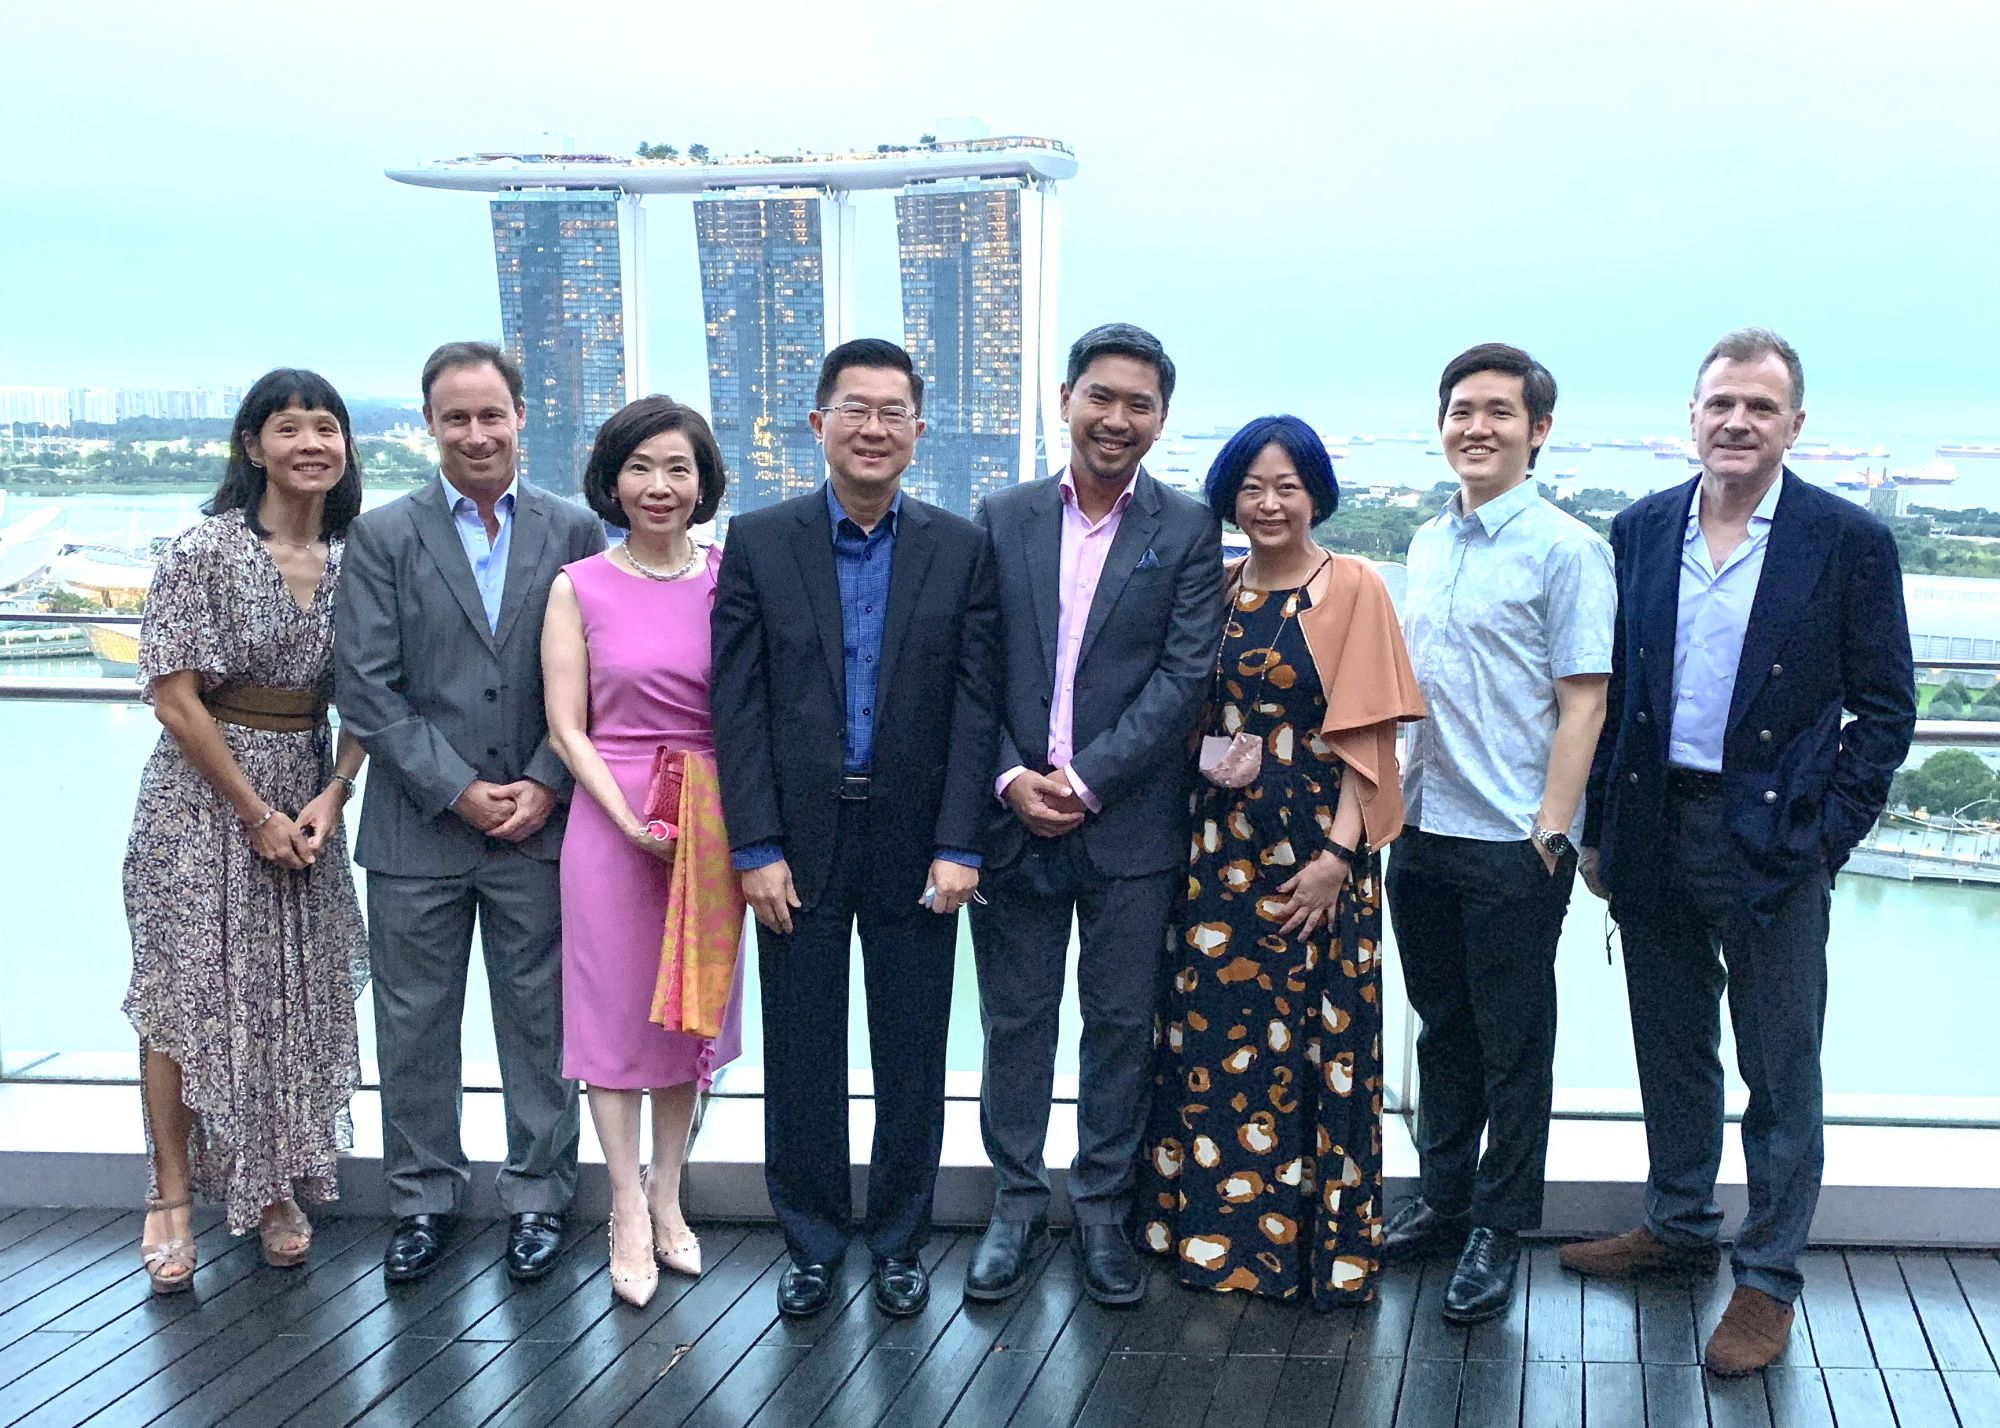 Halogen Foundation Singapore's co-founder and executive committee board director Martin Tan (fourth from right) hosted a dinner session with Stephen Riady (fourth from left), the executive chairman of OUE, one of the key sponsors for the foundation